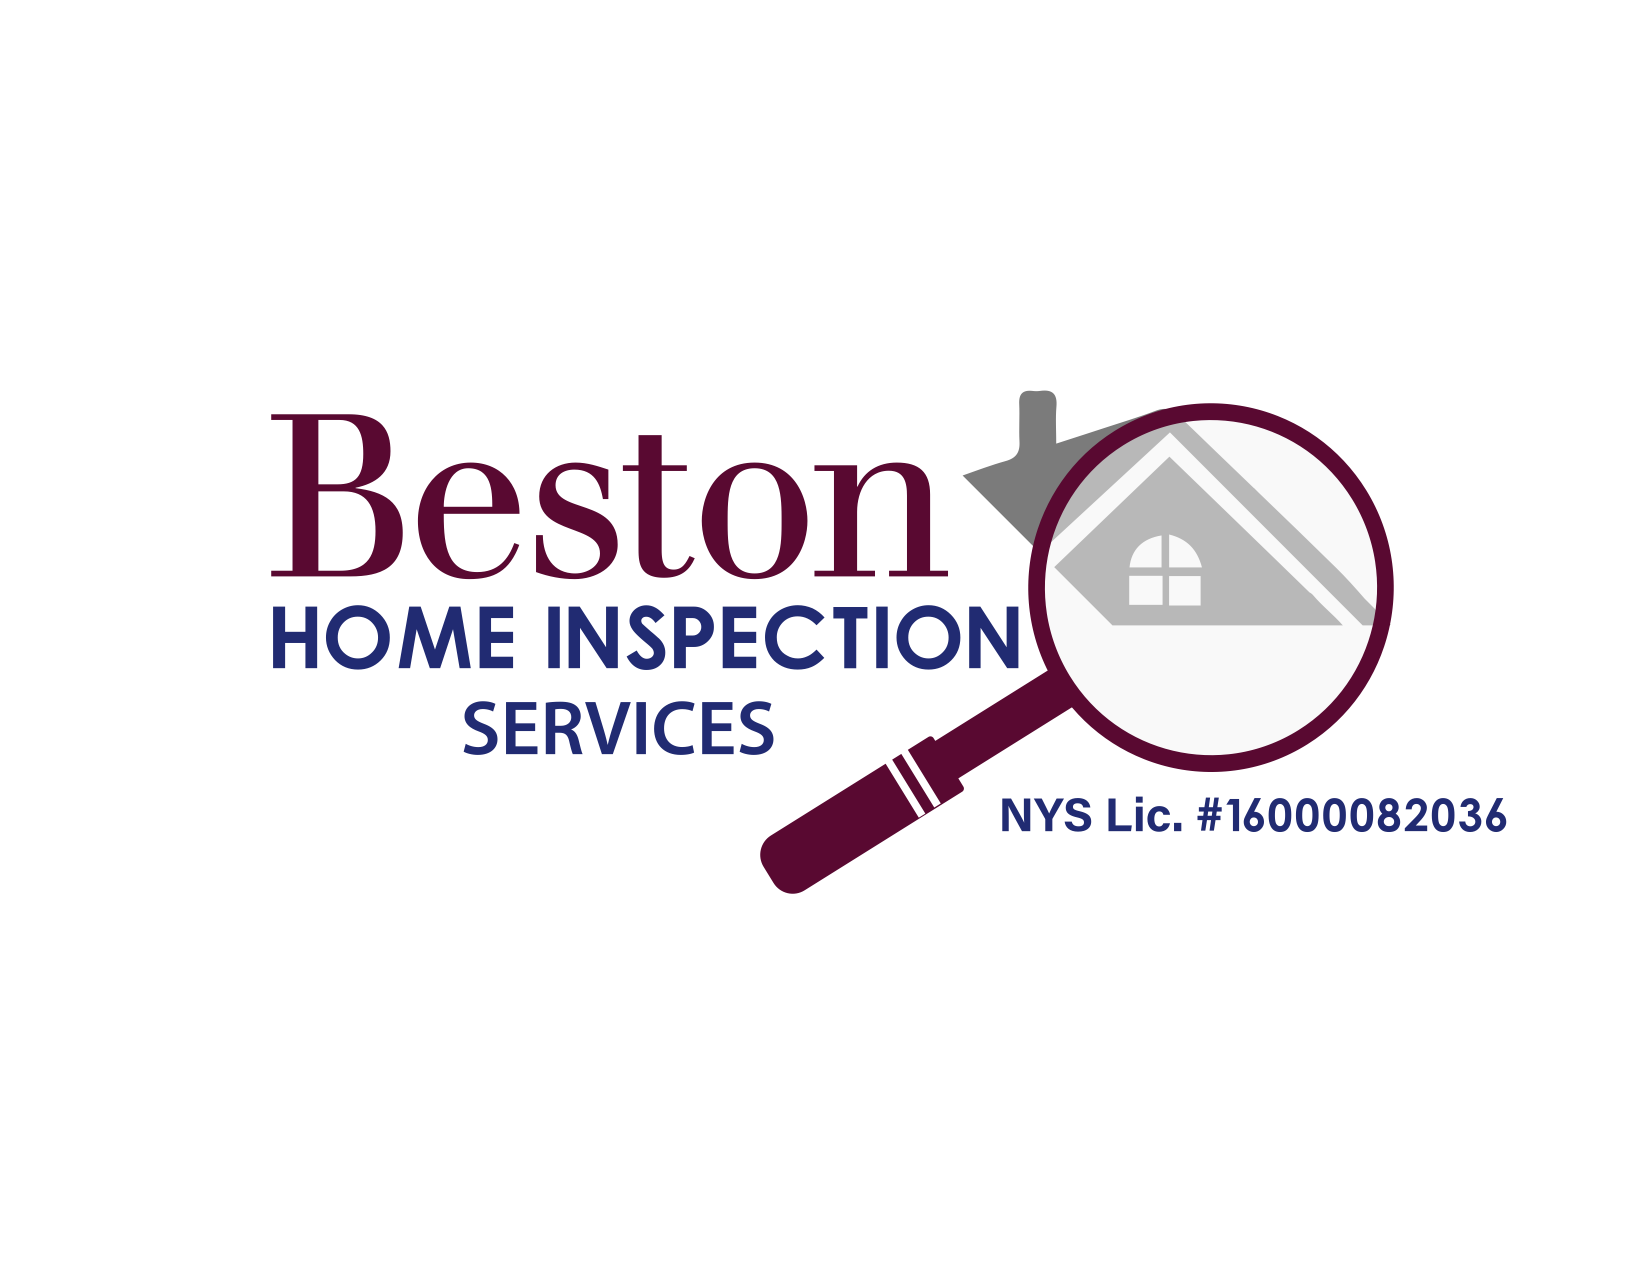 Beston home inspection   colored logo